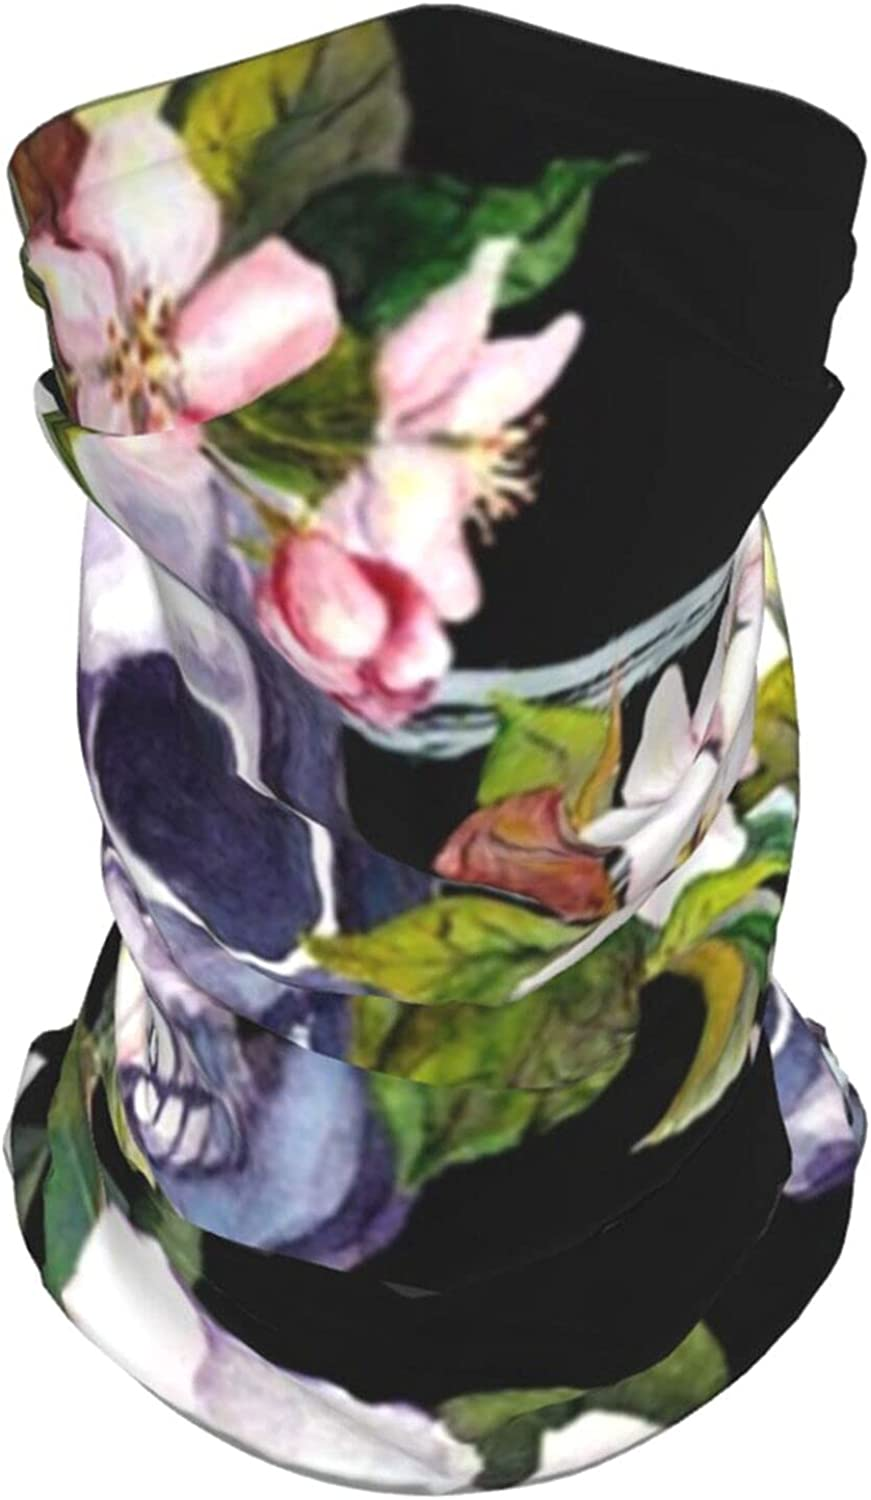 Human Skulls White Flowers Halloween Day Beauty Art Holidays Summer Ice Silk Breathable Face Mask Neck Gaiter Scarf Bandanas for Fishing,Hiking,Running,Motorcycle and Daily Wear